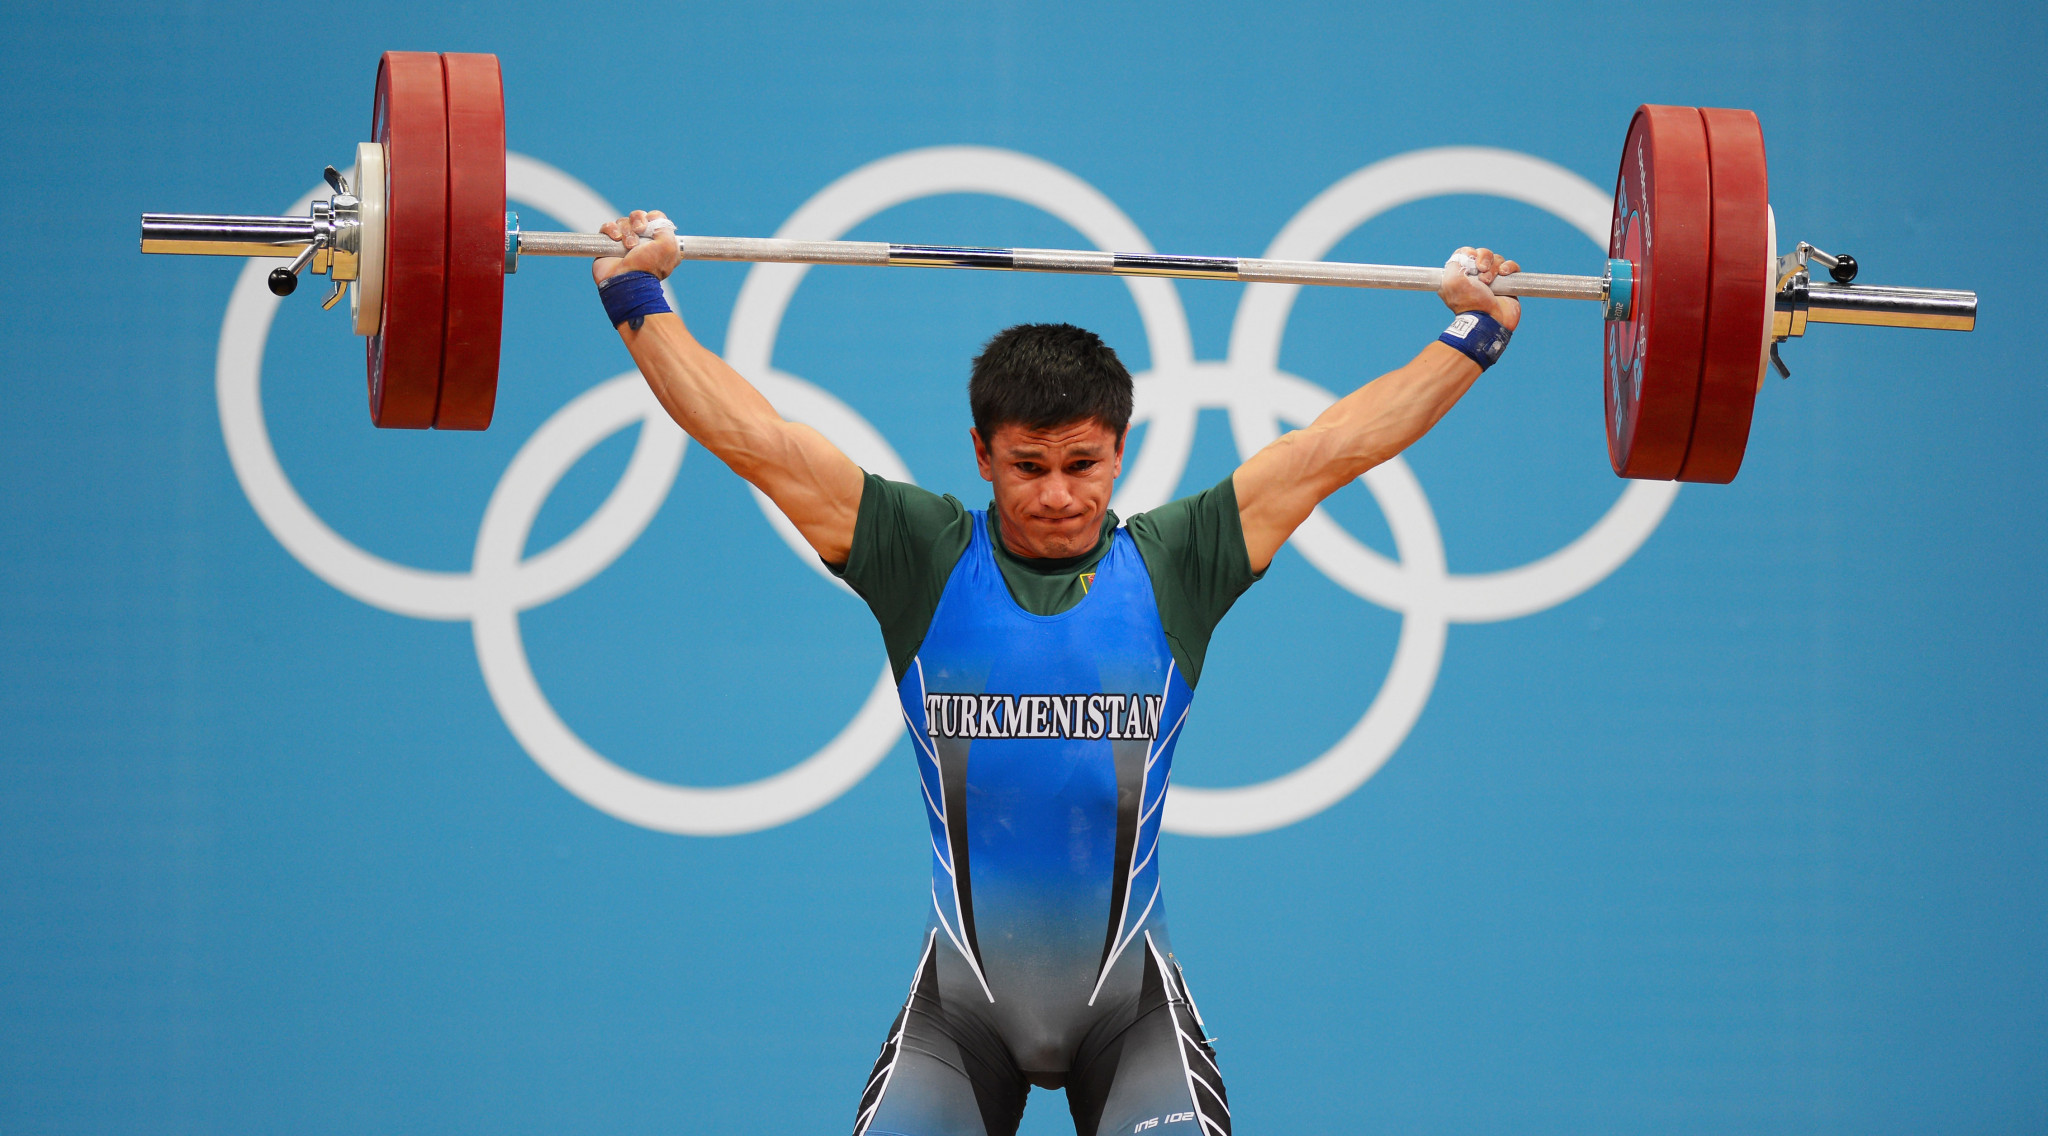 Umurbek Bazarbayev was appointed as Turkmenistan's national coach while serving a doping suspension ©Getty Images